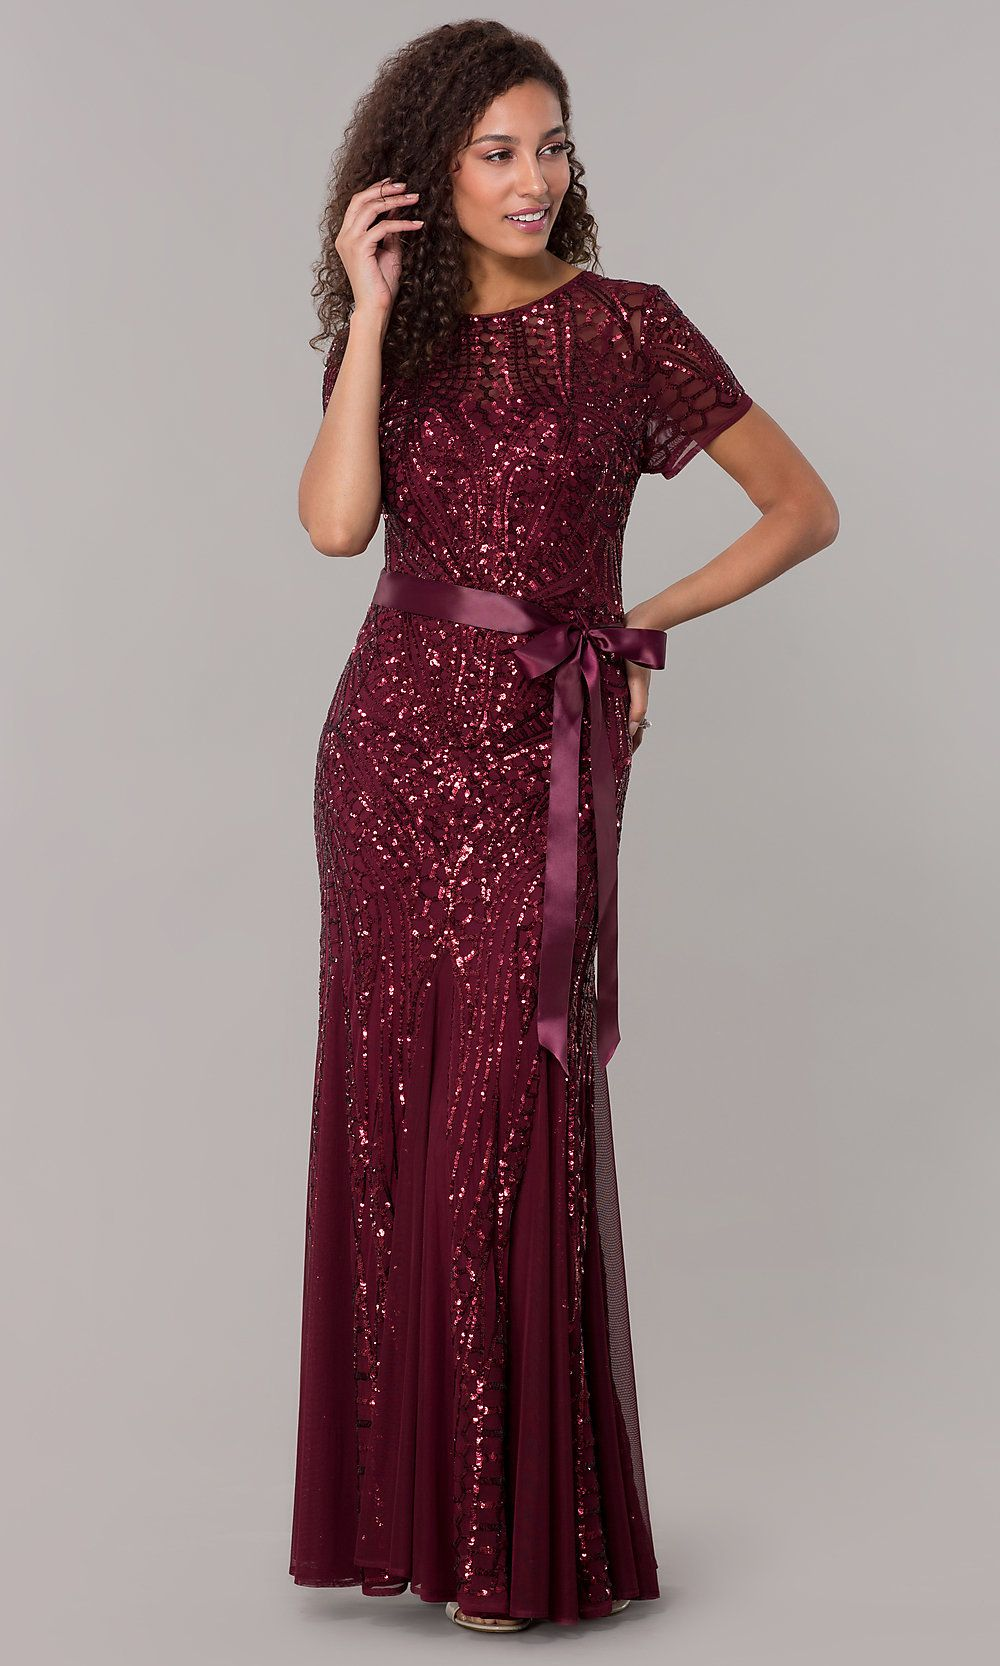 a50ce4d5 Adrianna Papell Orchestral Opening Maxi Dress Wine | Look Book in 2019 |  Dresses, Purple gowns, Fashion dresses